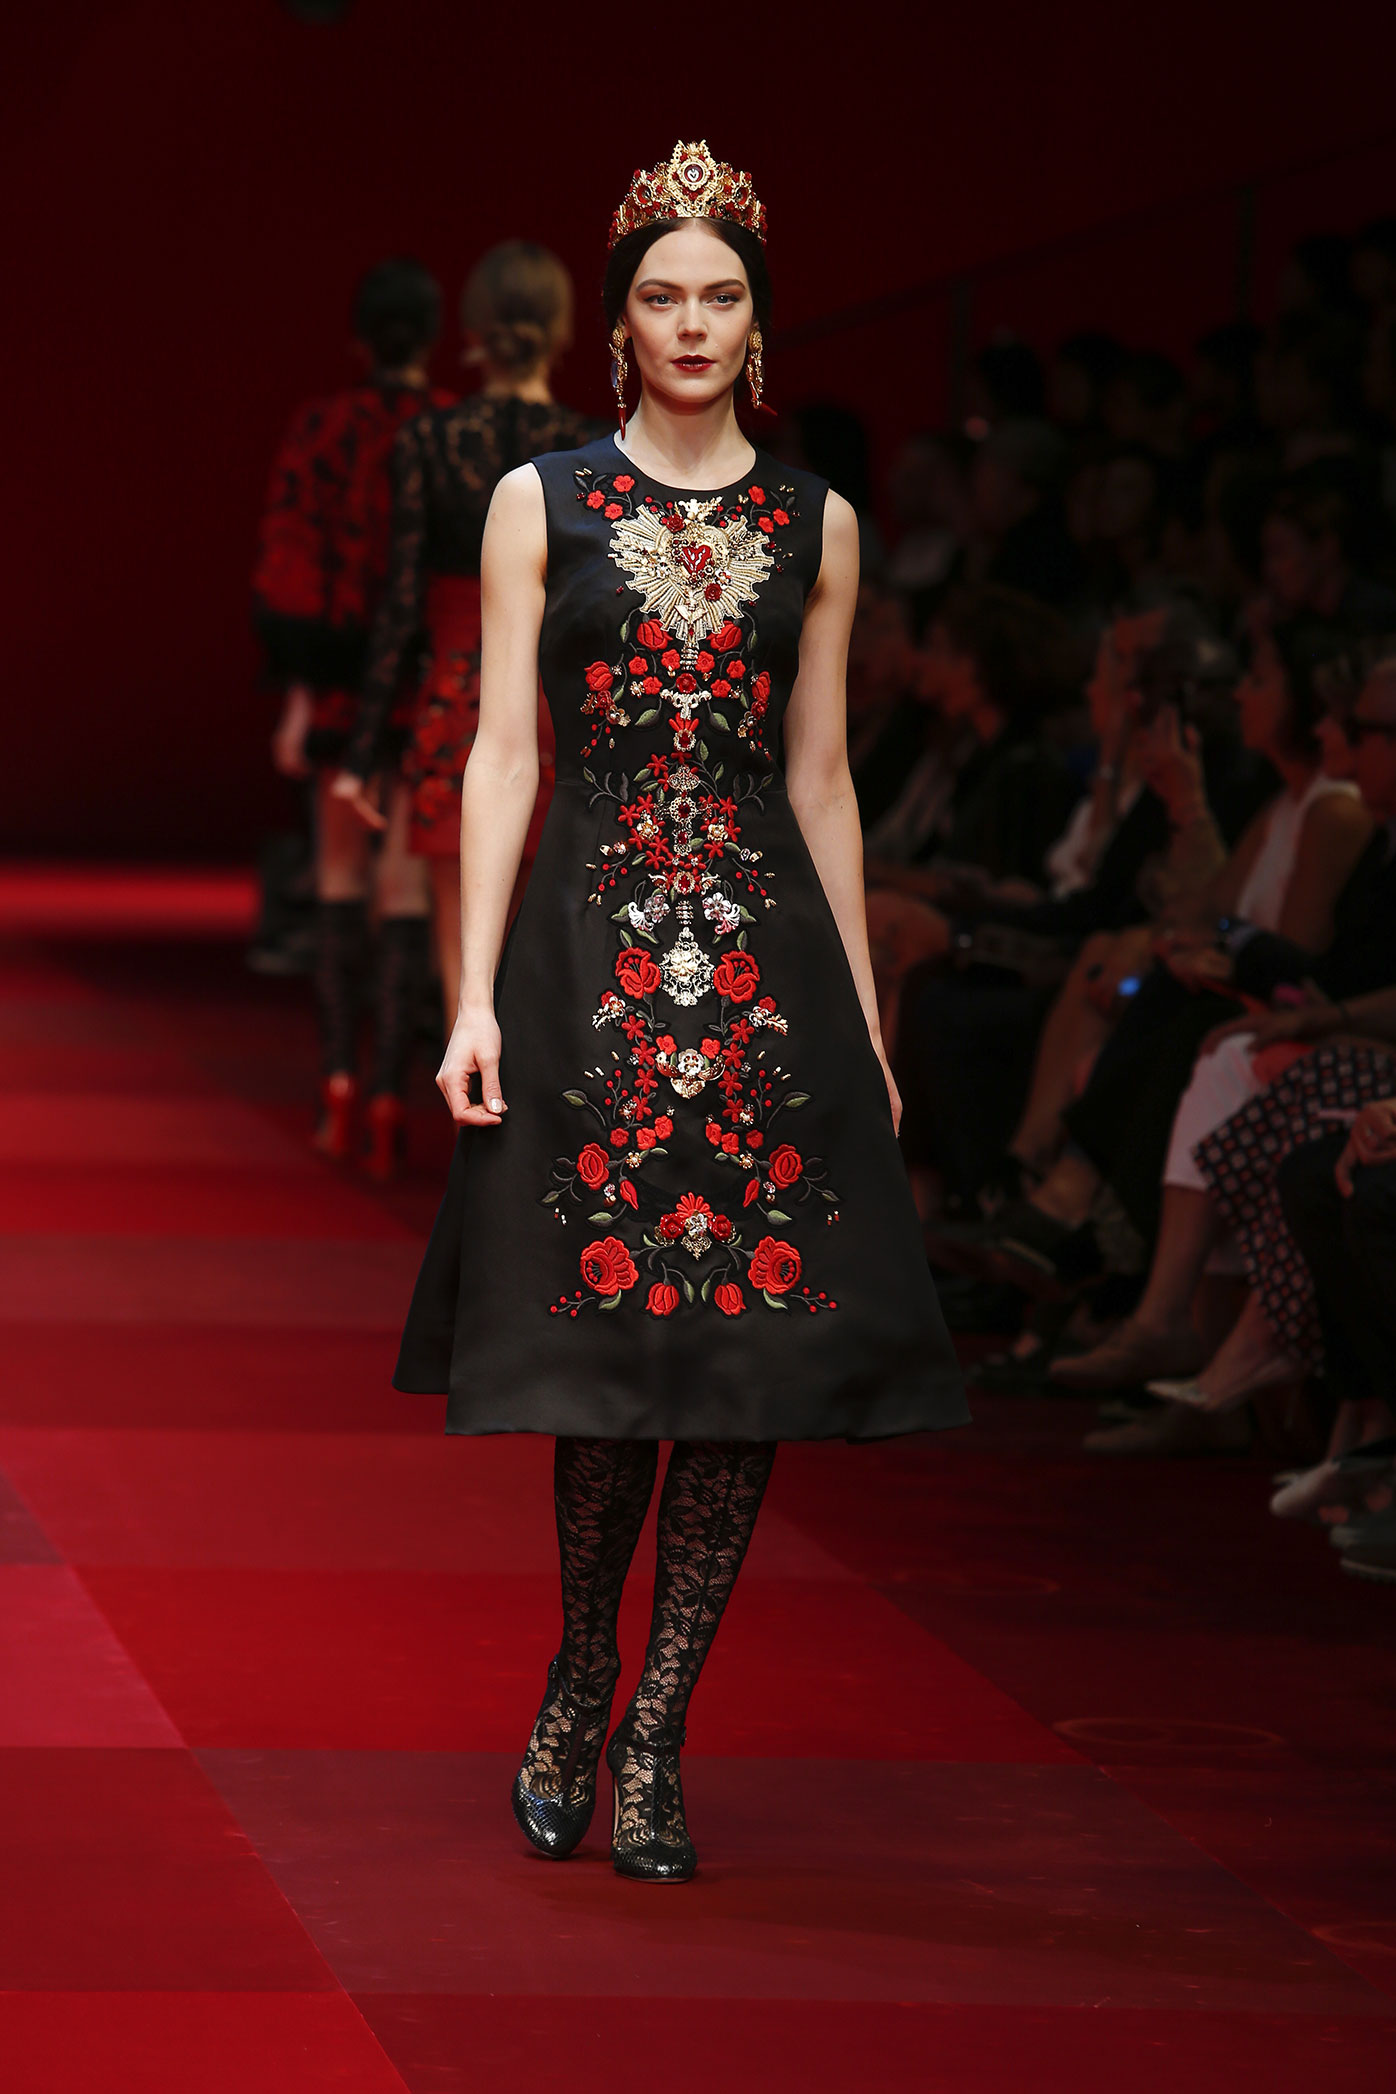 dolce-and-gabbana-summer-2015-women-fashion-show-runway-60-zoom